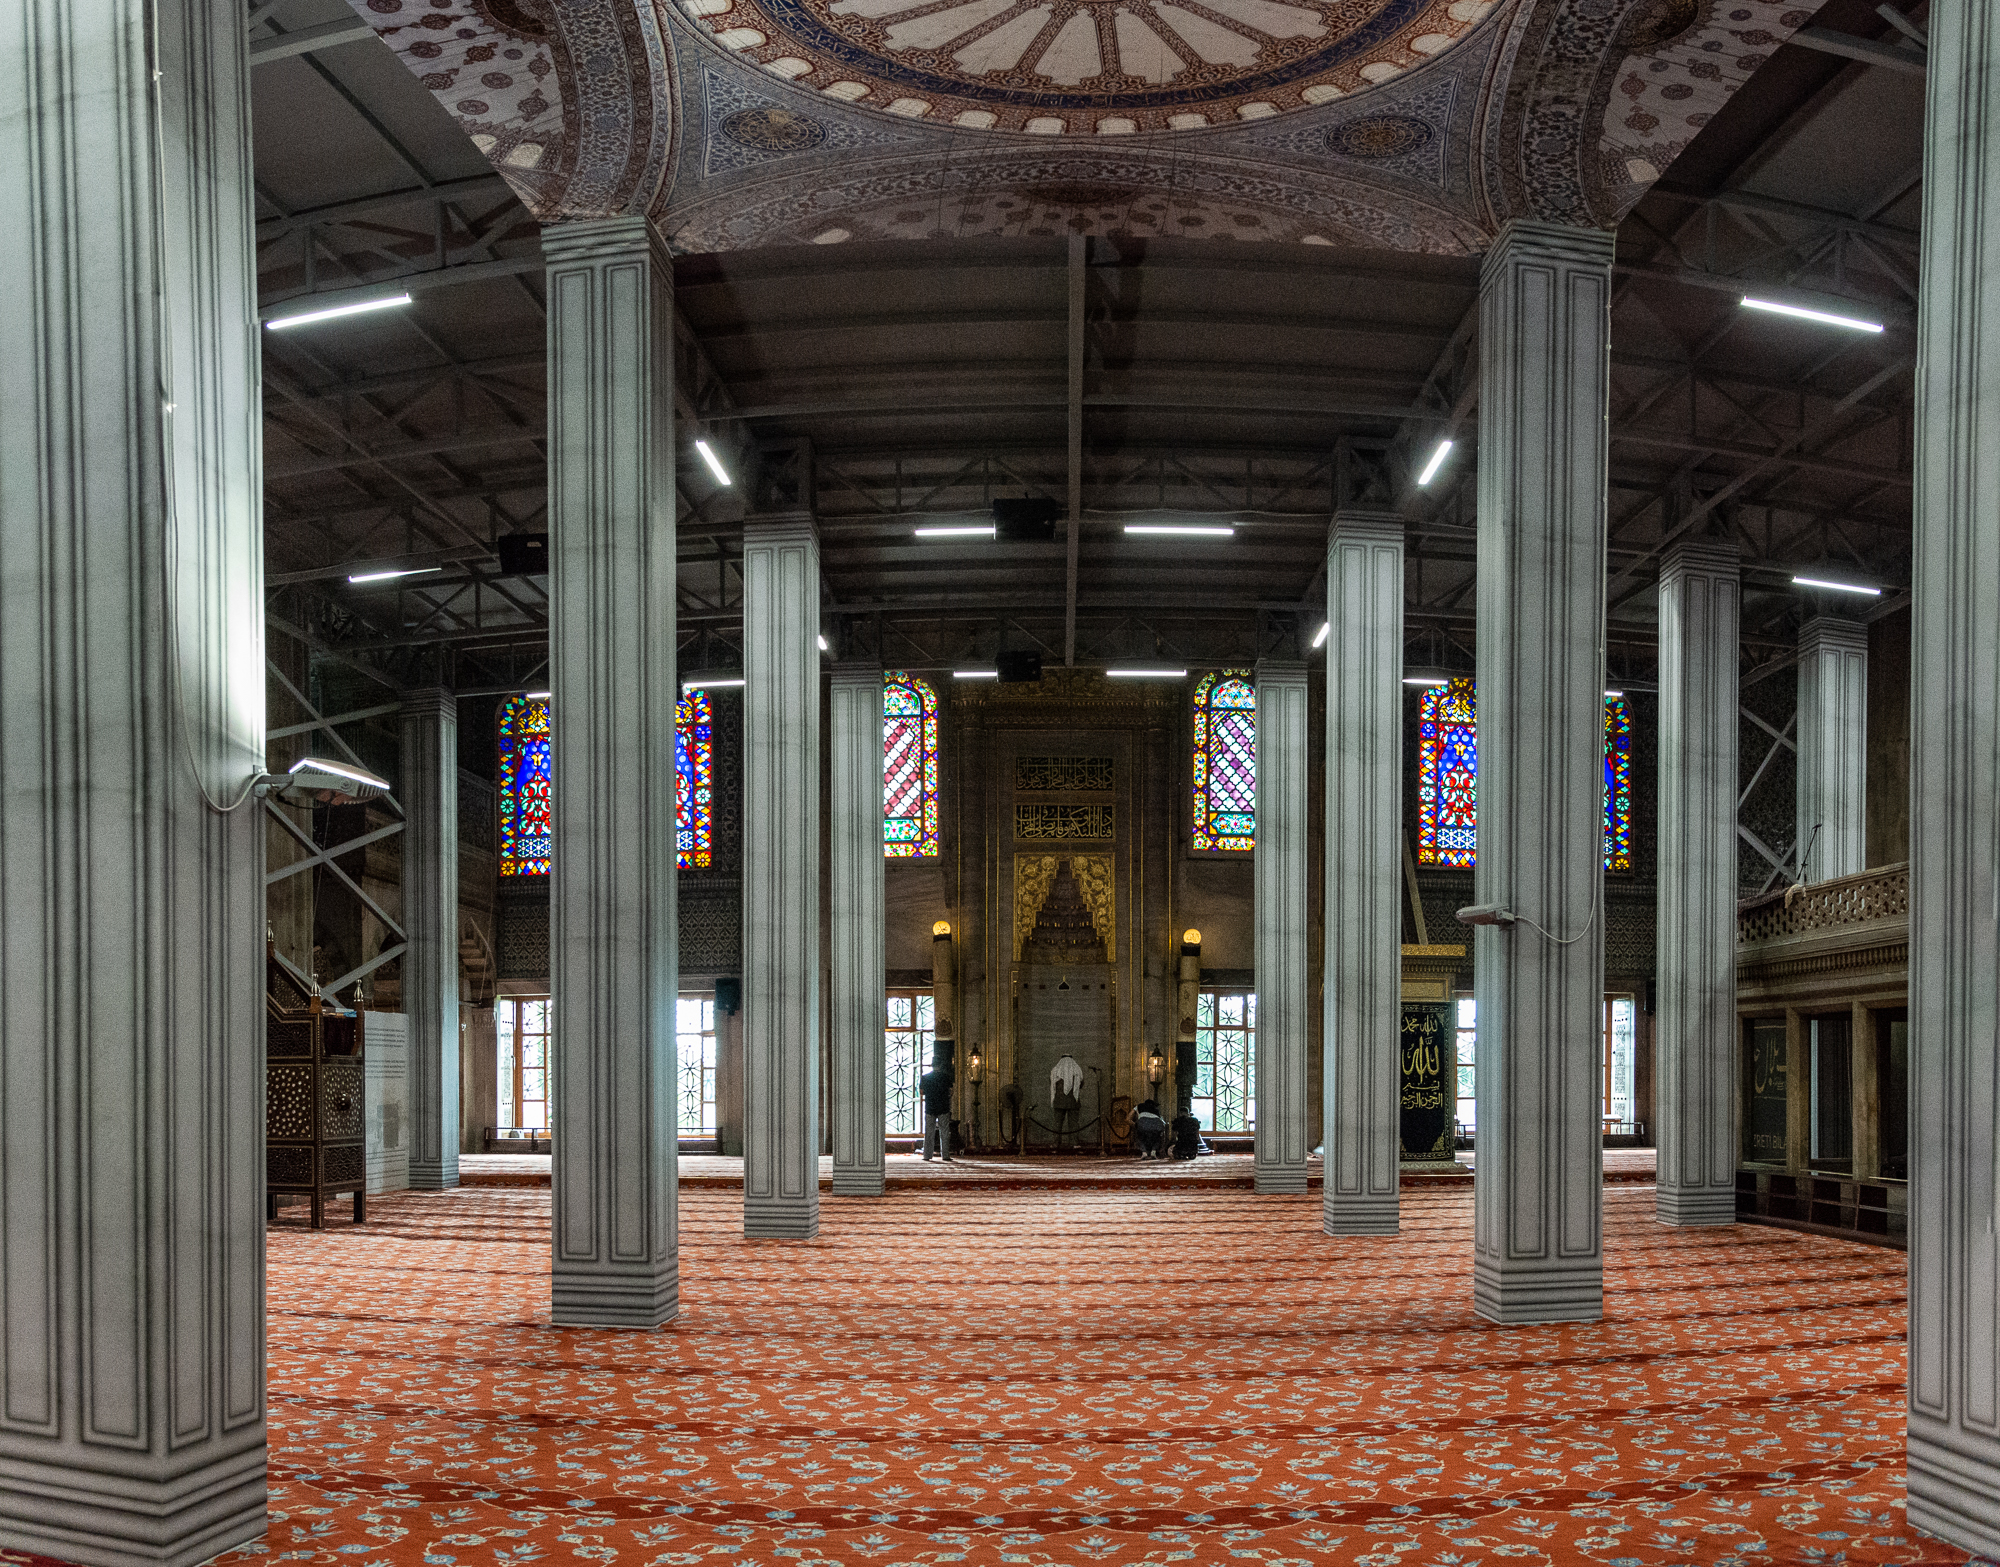 The main worship area - The mosque is only open to visitors outside of prayer times.